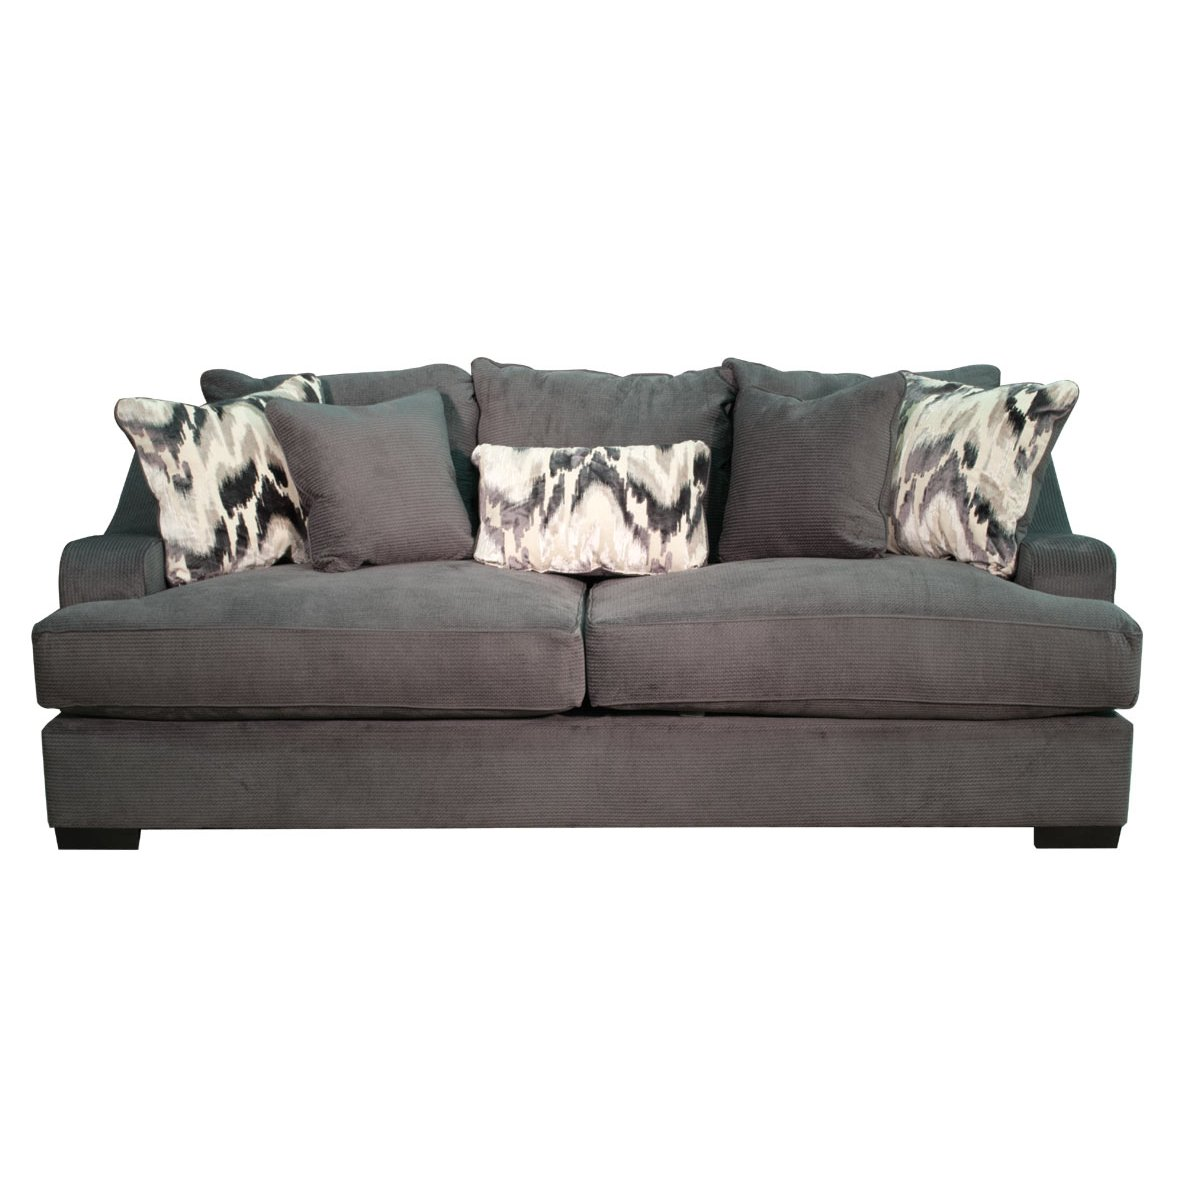 sale pit oversized l sofa recliner apartments within great luxe couch sofas full sectional for outlet set spaces couches with of prices park picture size gray room dump cheap furniture the chair big leather piece microfiber lincoln living chaise red handmade small modular brown